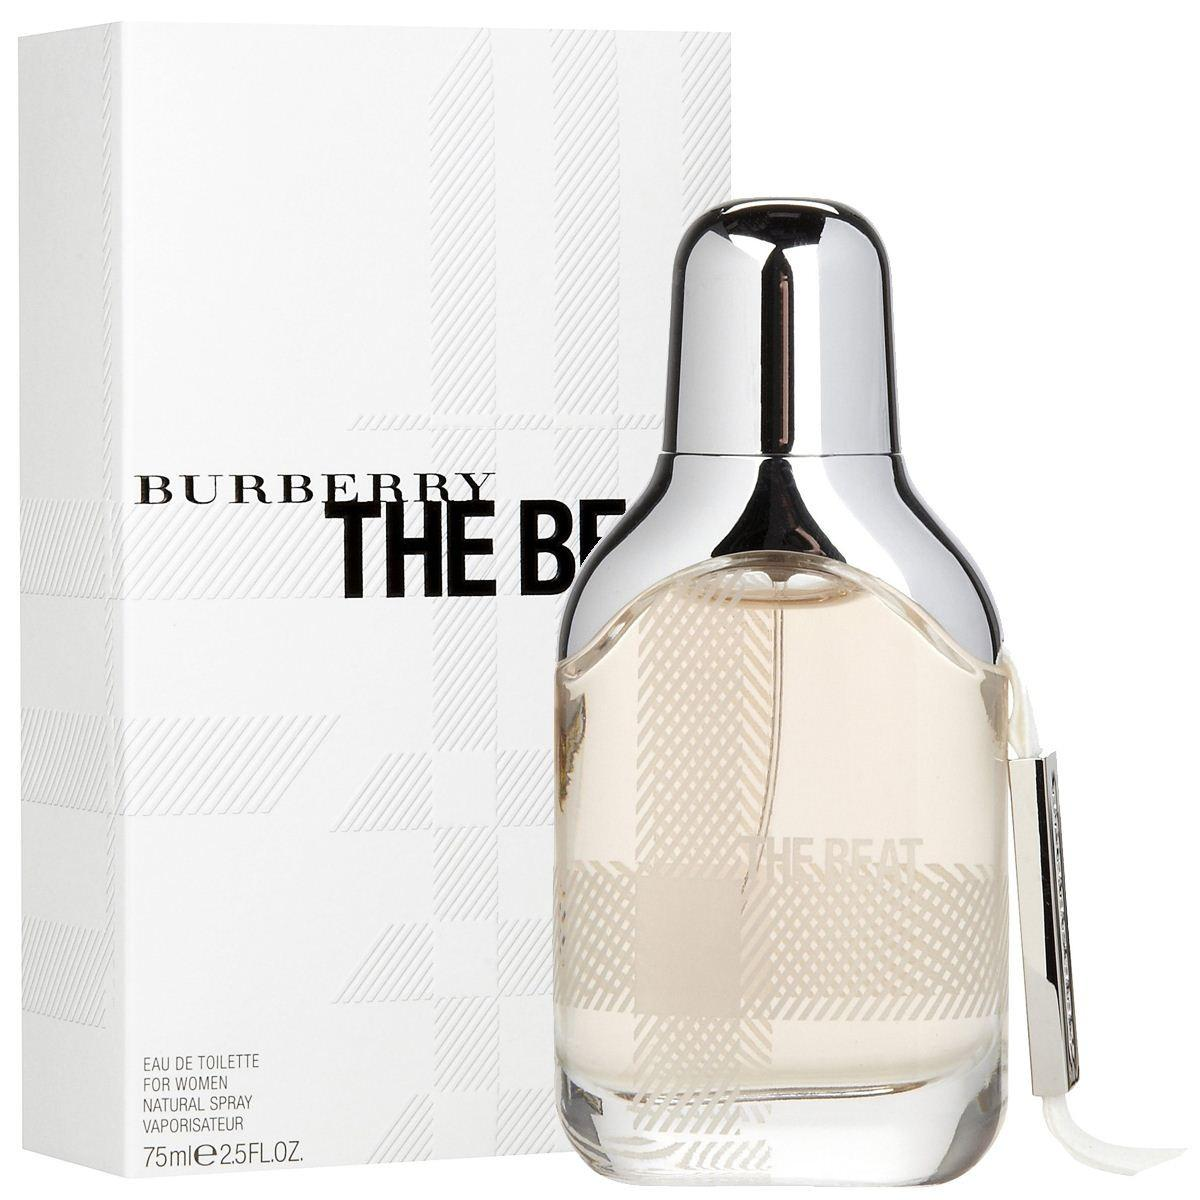 BURBERRY THE BEAT WOMAN EDT 75ML TESTER